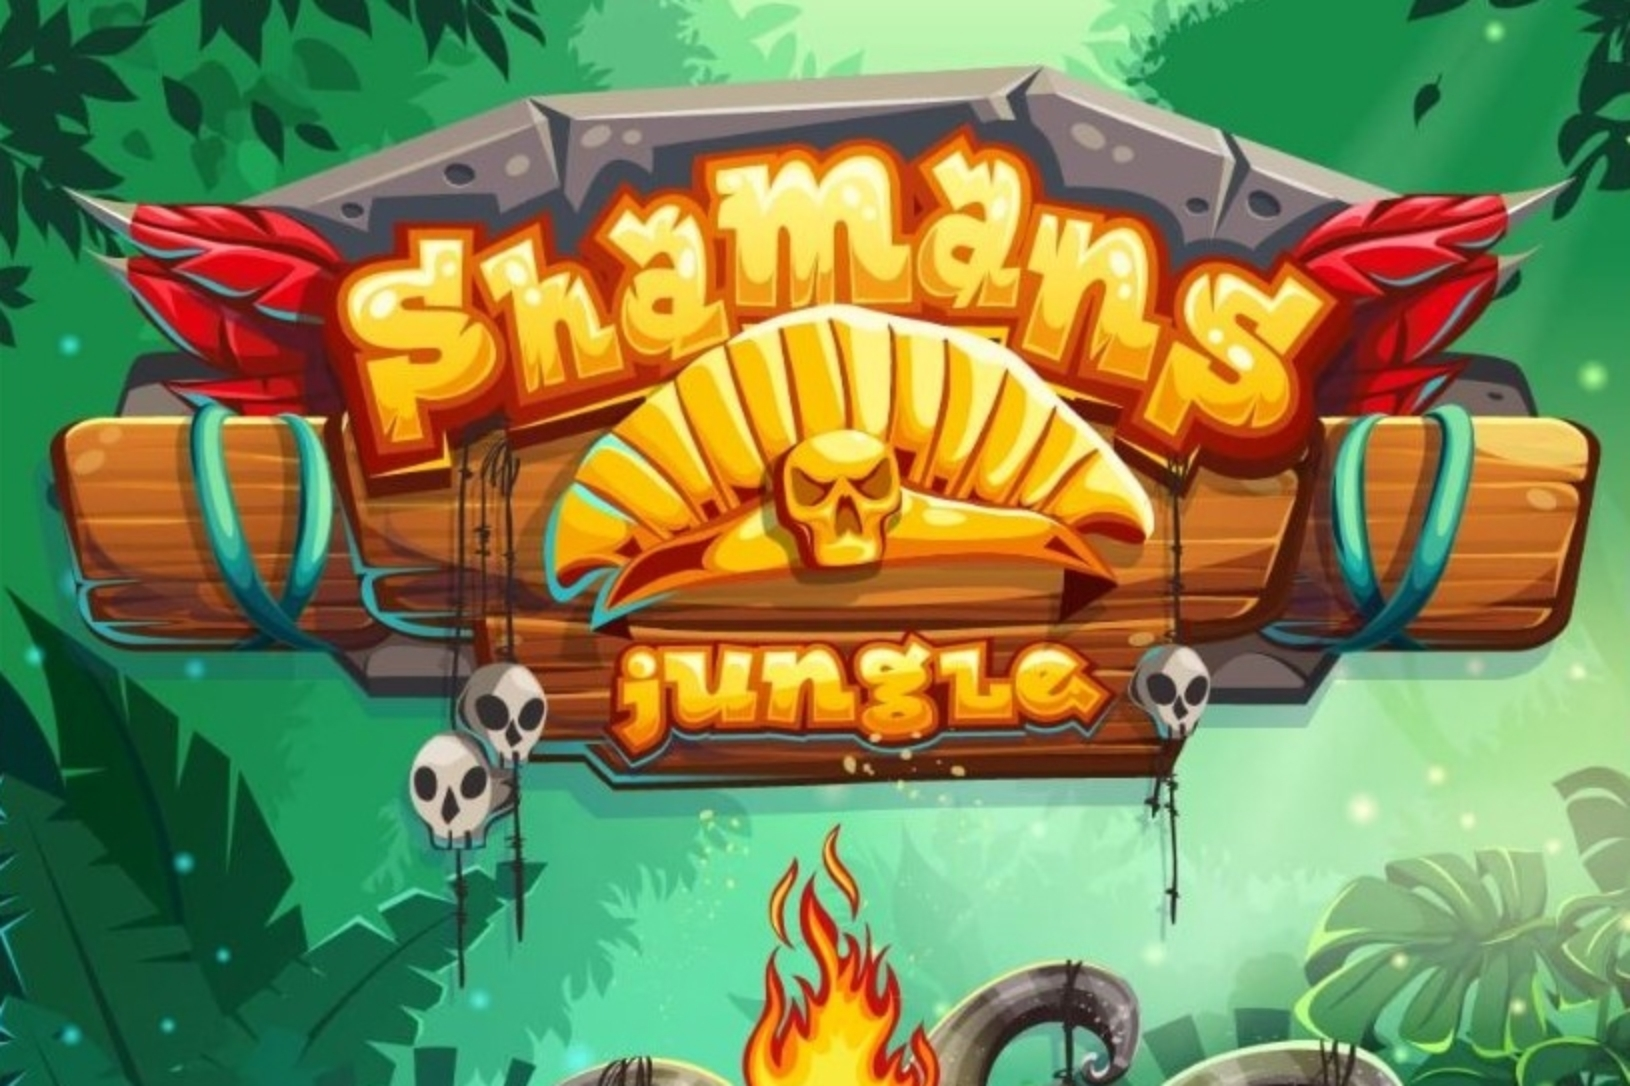 The Shaman's Jungle Online Slot Demo Game by Cubeia